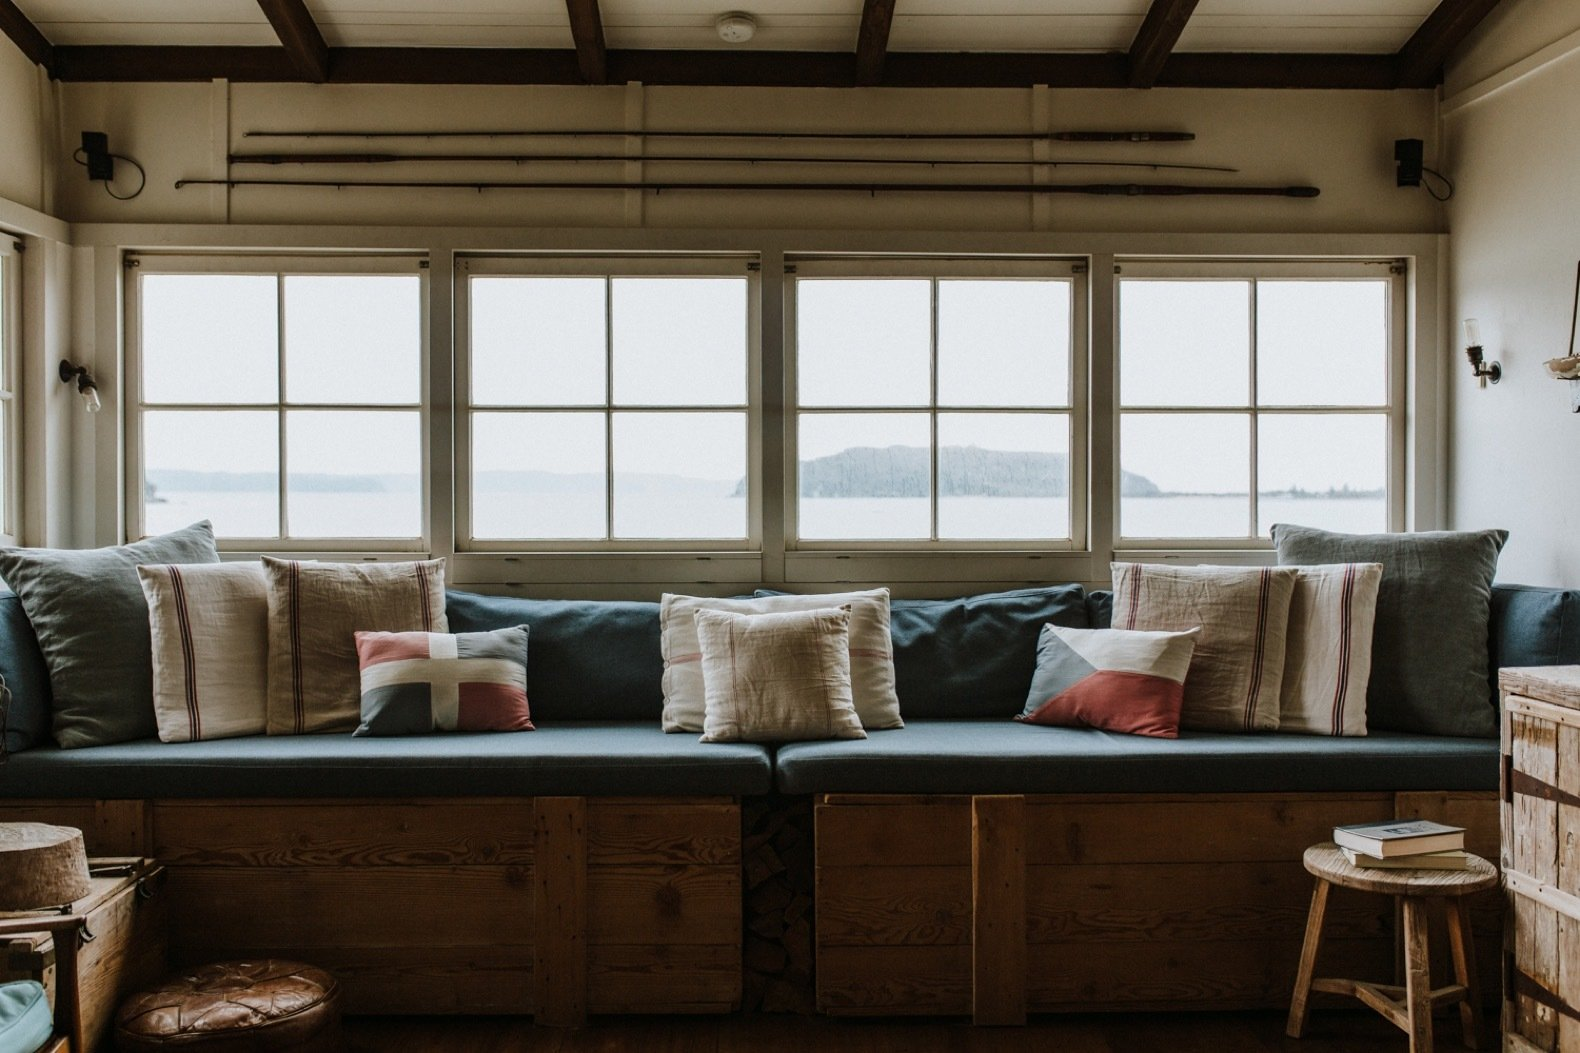 Living Room, Stools, Storage, Bench, Medium Hardwood Floor, and Wall Lighting A full-length window seat overlooks views of the beach and the bay.  Photo 8 of 11 in A 1920s Fisherman's Shack in Australia Breathes New Life as a Cozy, Unique Rental